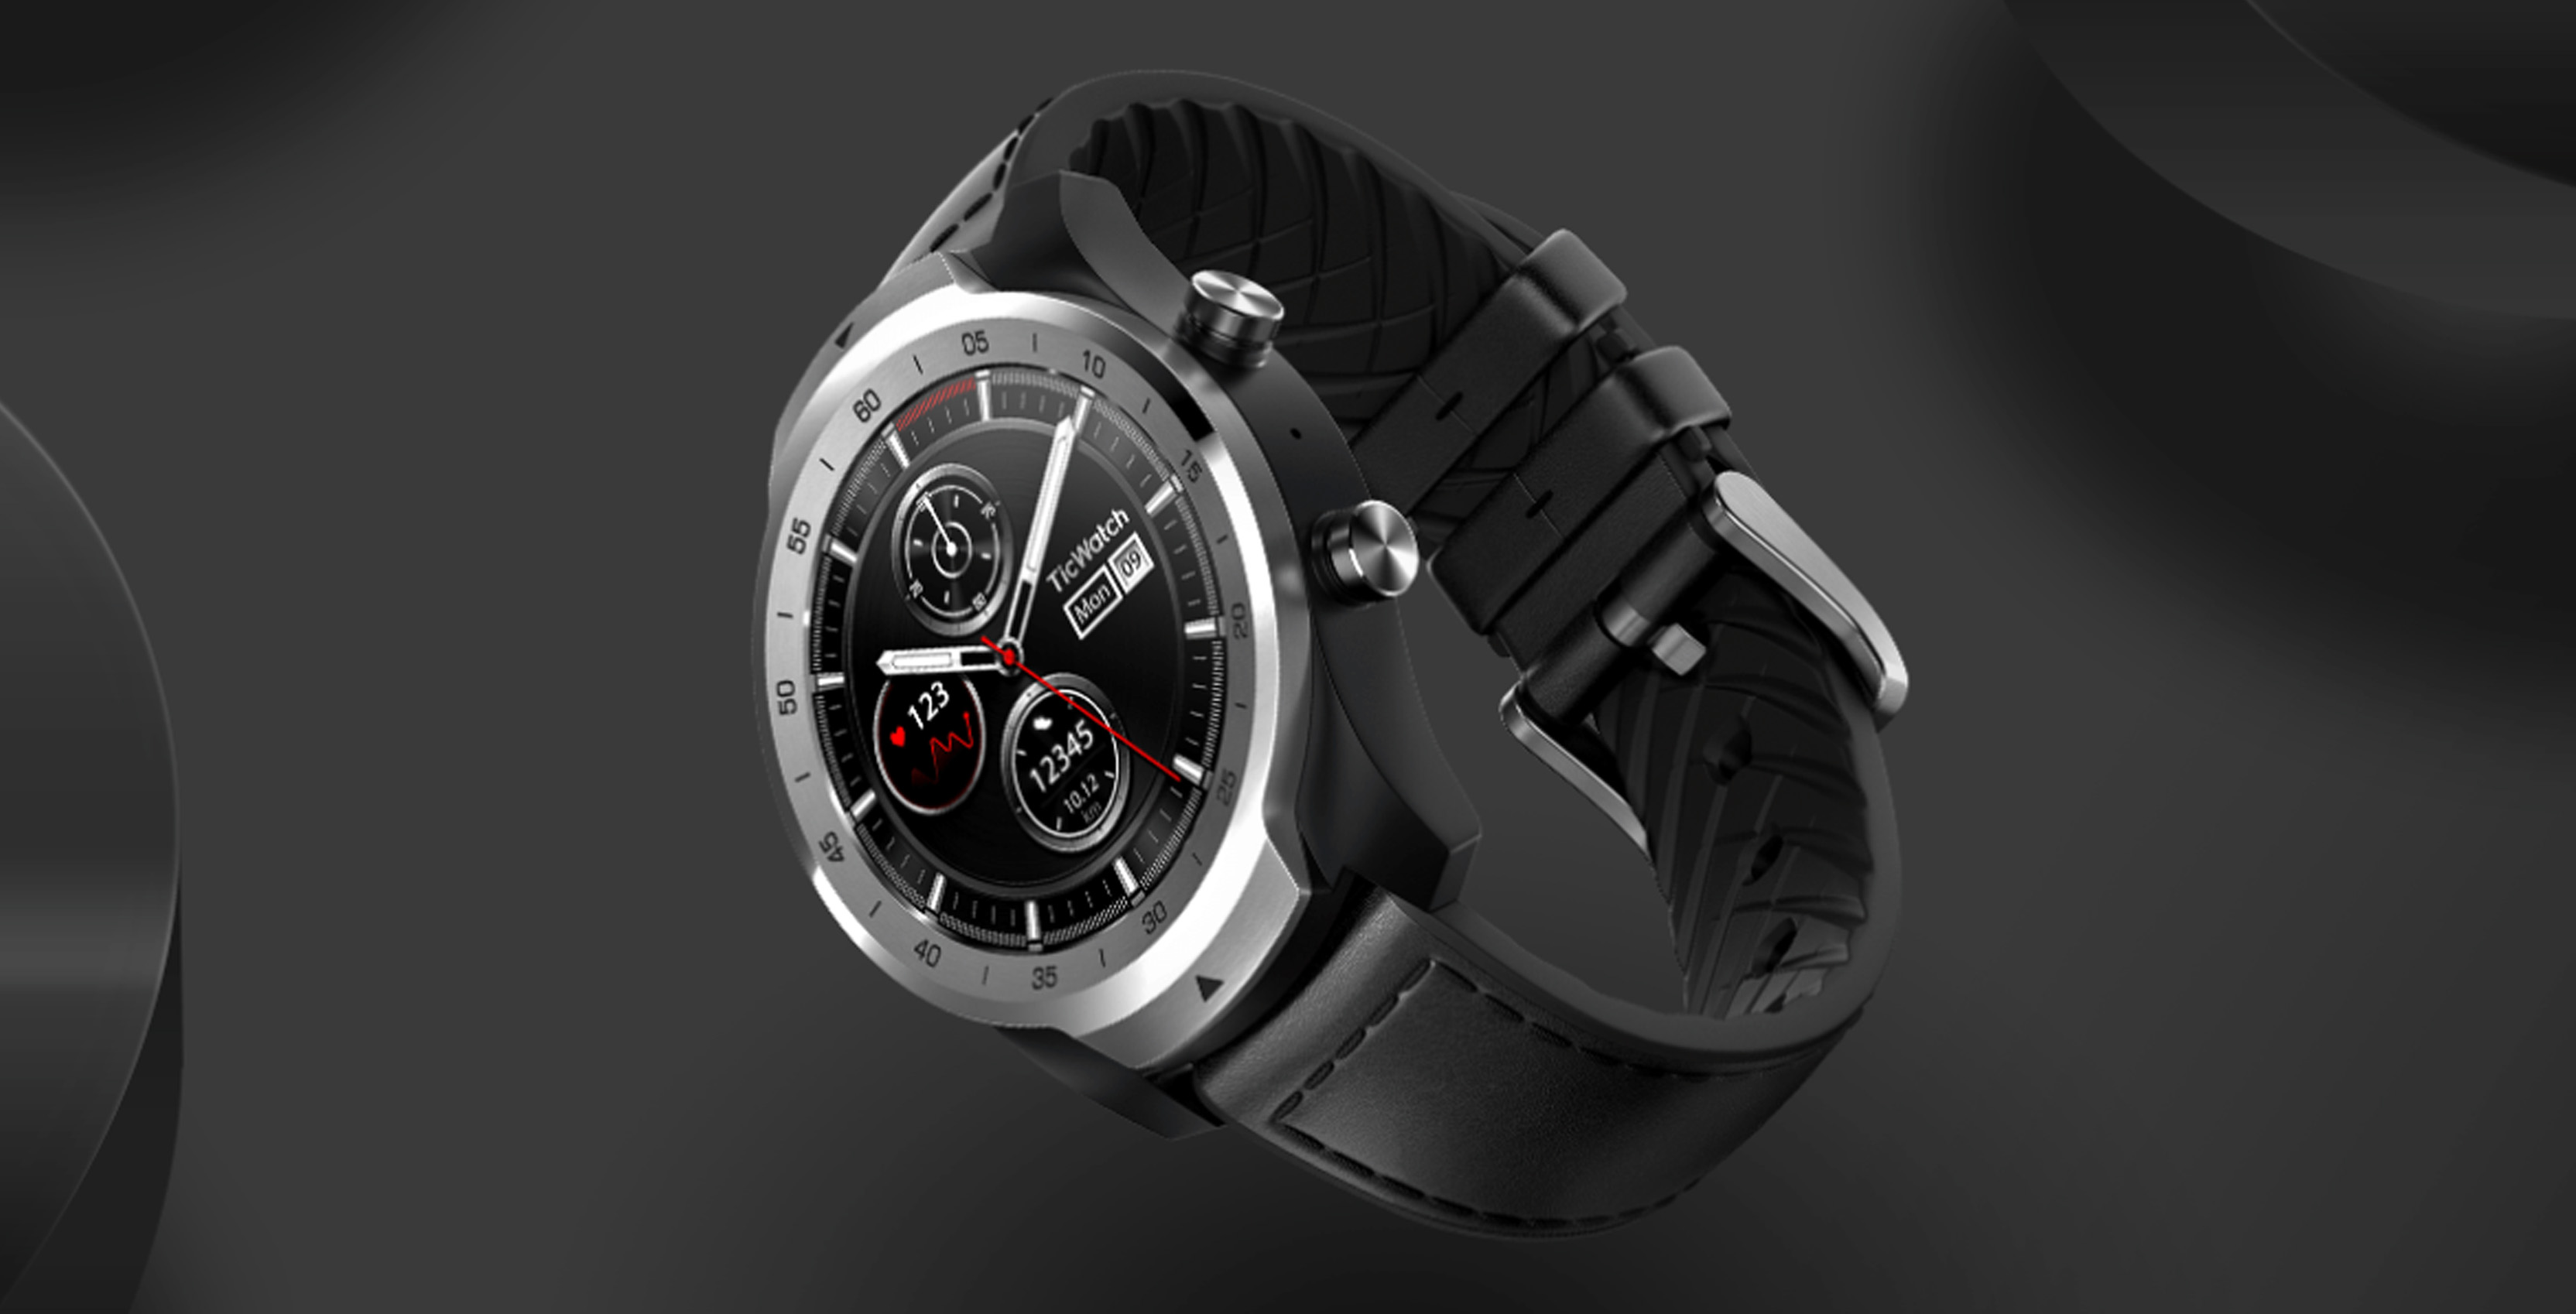 New Wear OS watch features two screens to save power